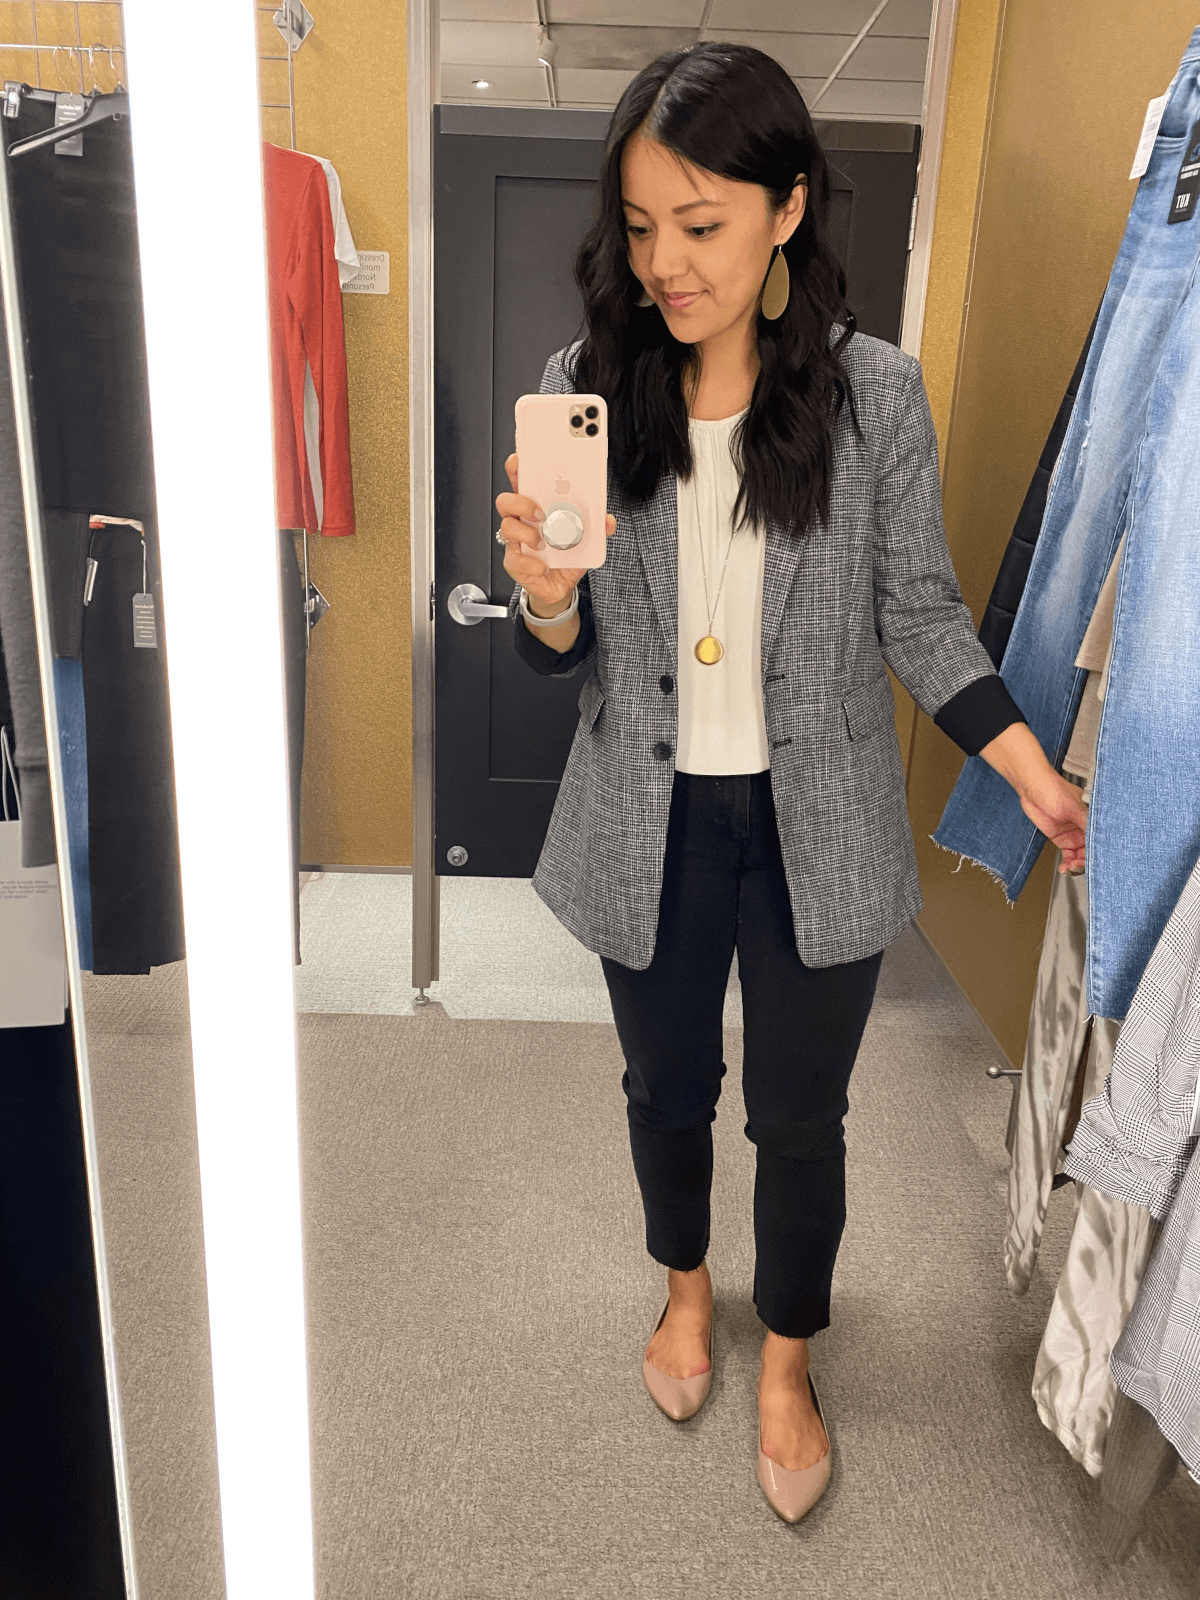 Nordstrom reviews white blouse + vince camuto tweed jacket + black straight leg jeans + gold earrings + pendant necklace + nude flats